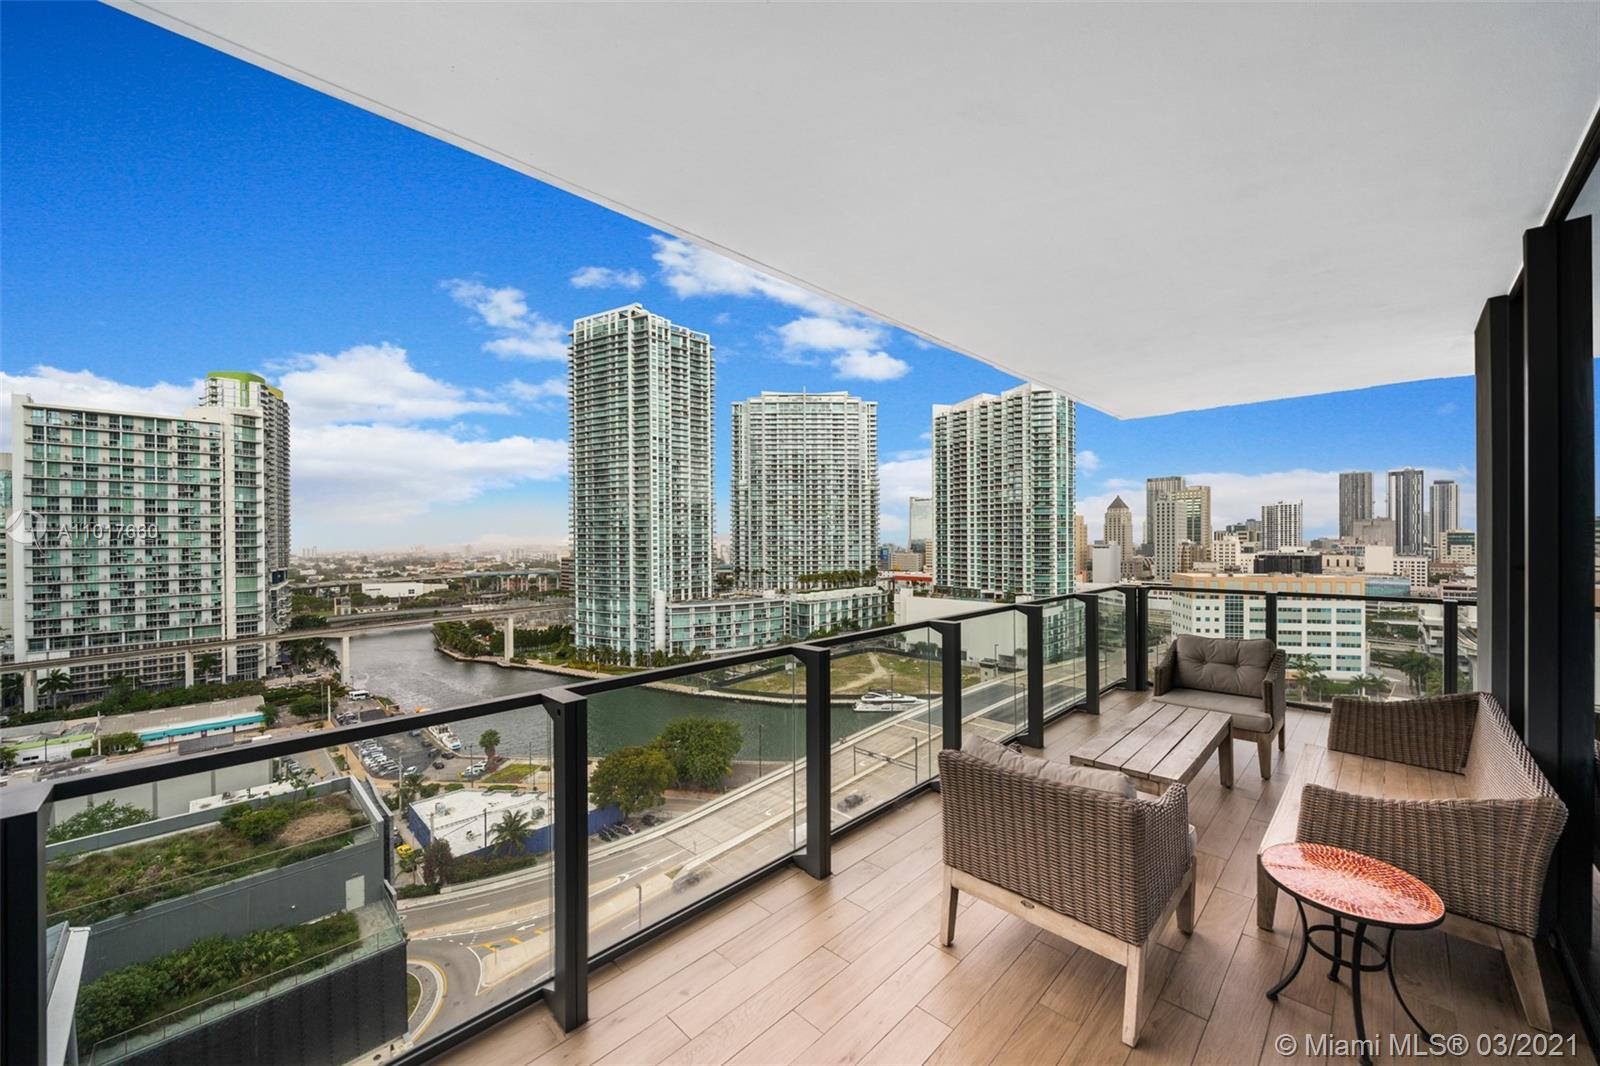 Spectacular 2 Bed 2.5 Bath Corner Unit featuring 1,265 SF of Interior Living Space w/ an expansive w